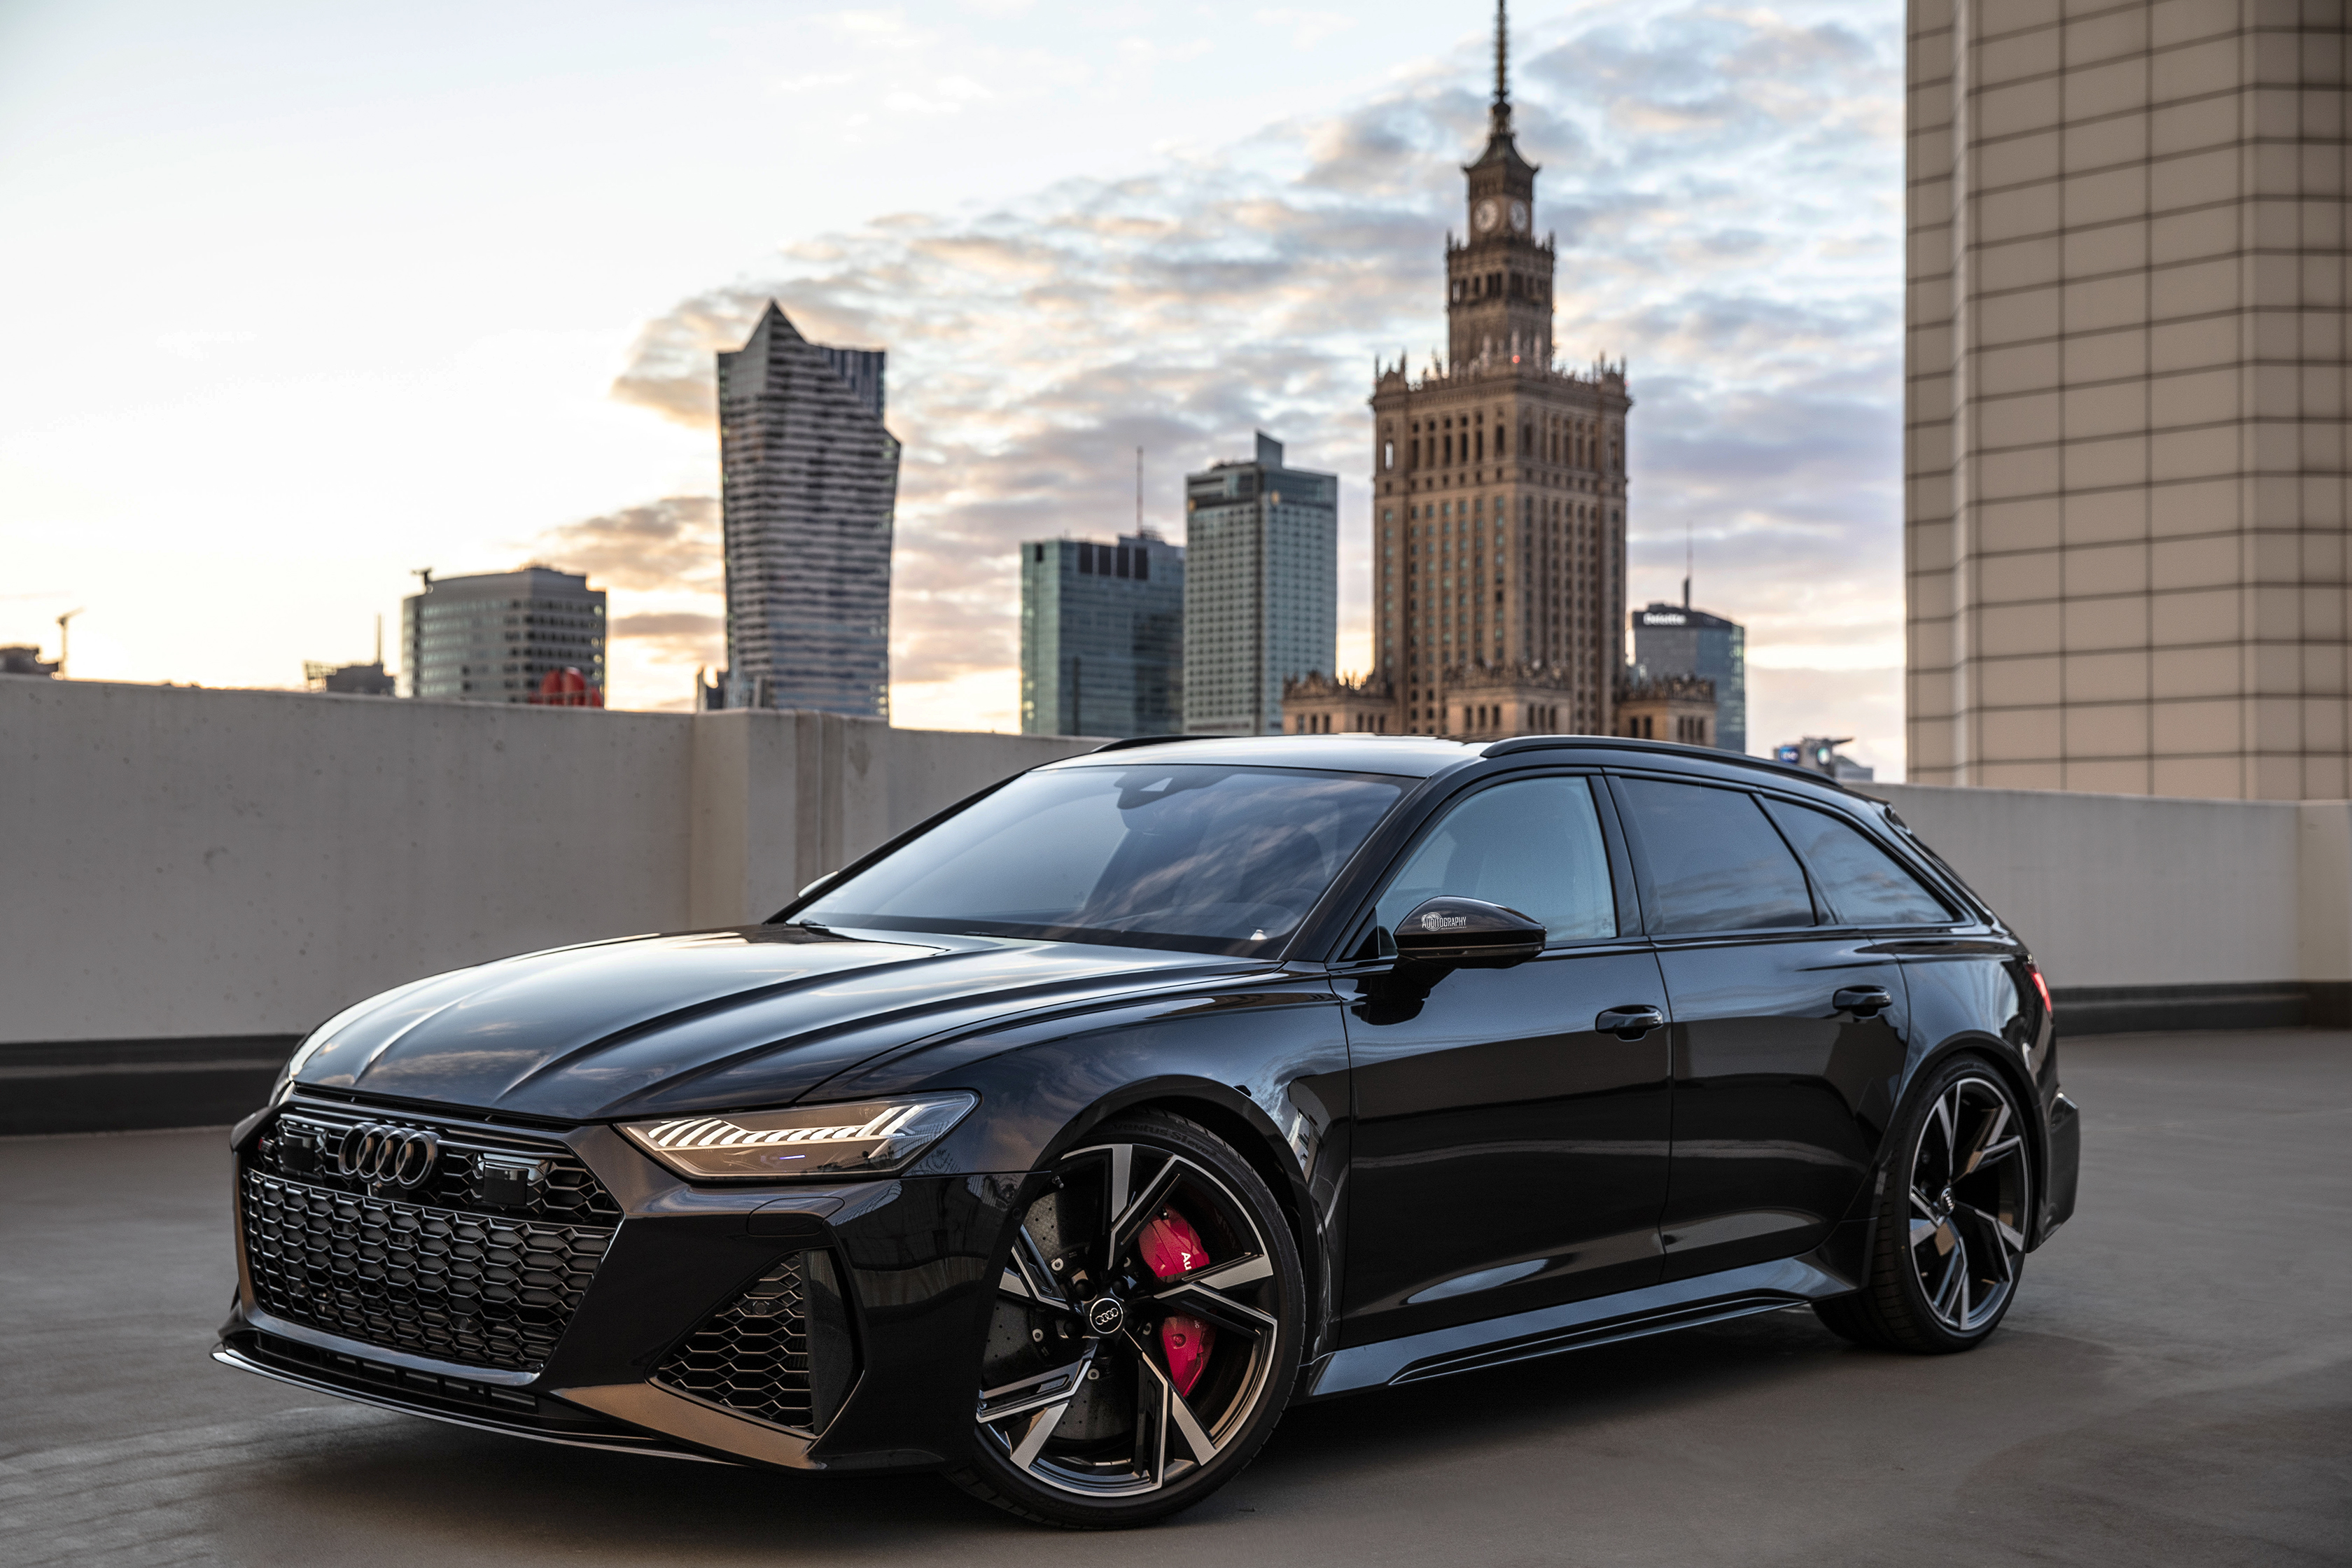 Gorgeous murdered out 2021 Audi RS6 Avant - video + HQ photos